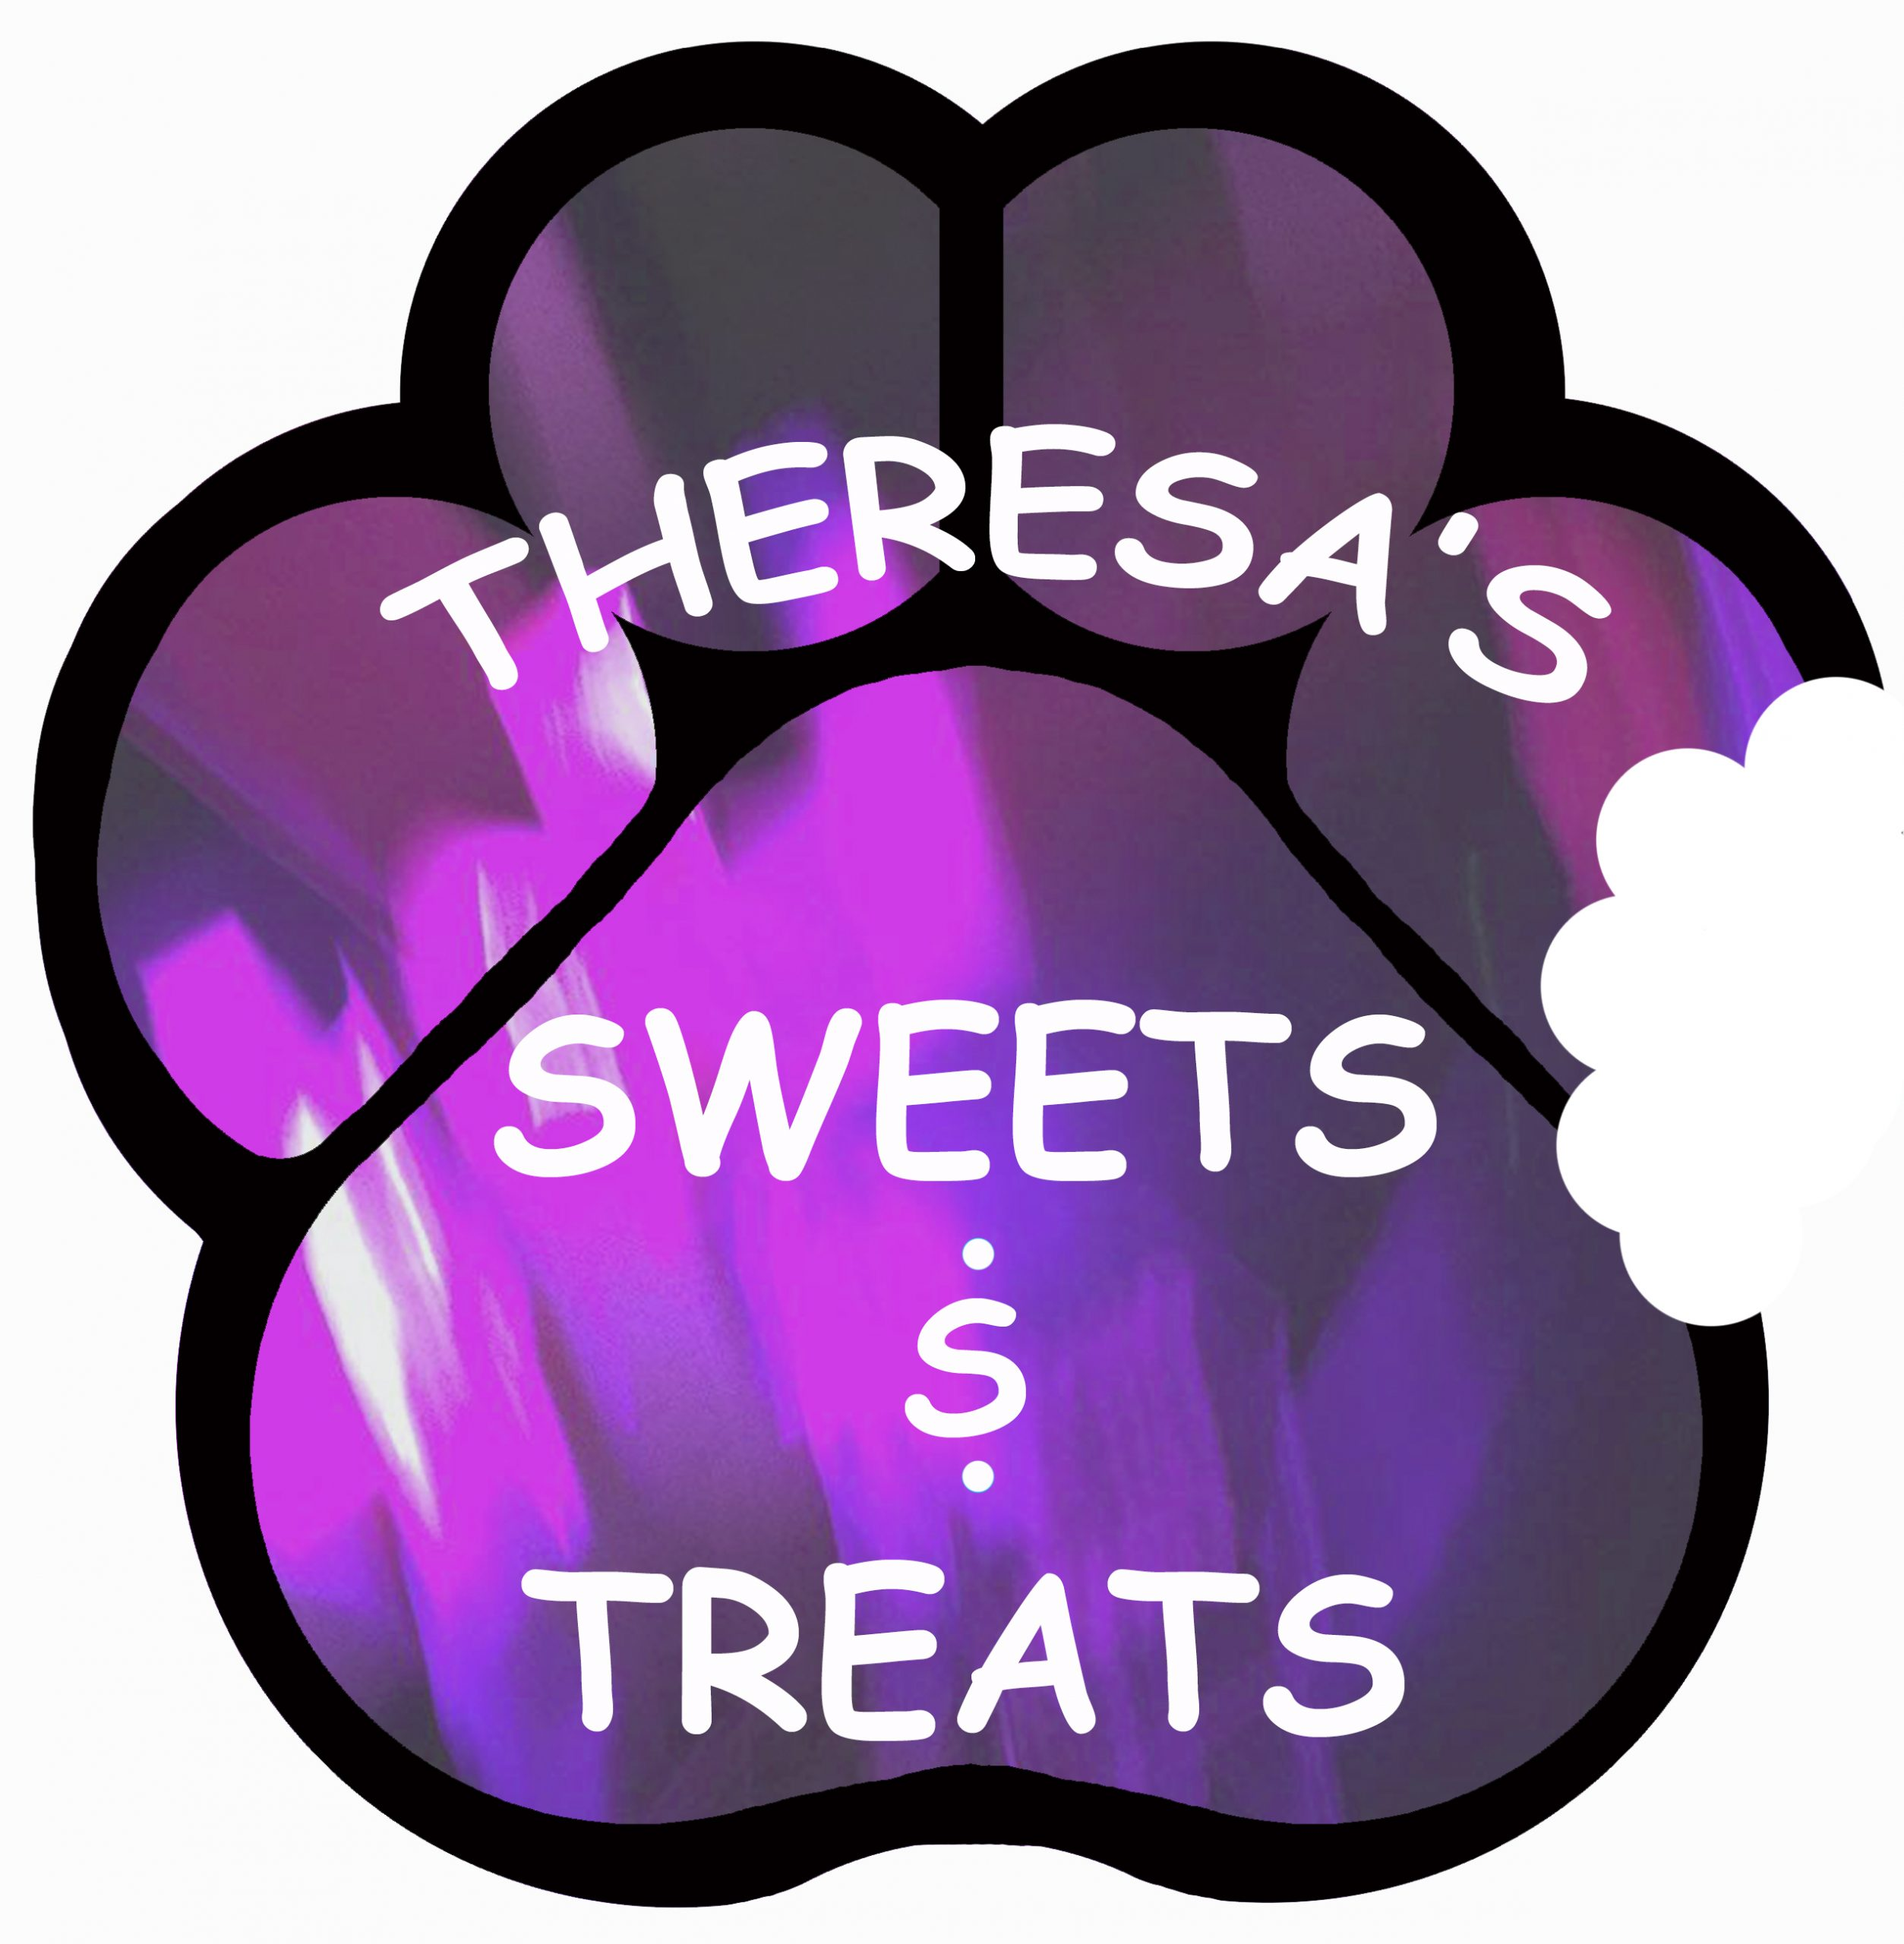 Theresa's Sweets & Treats